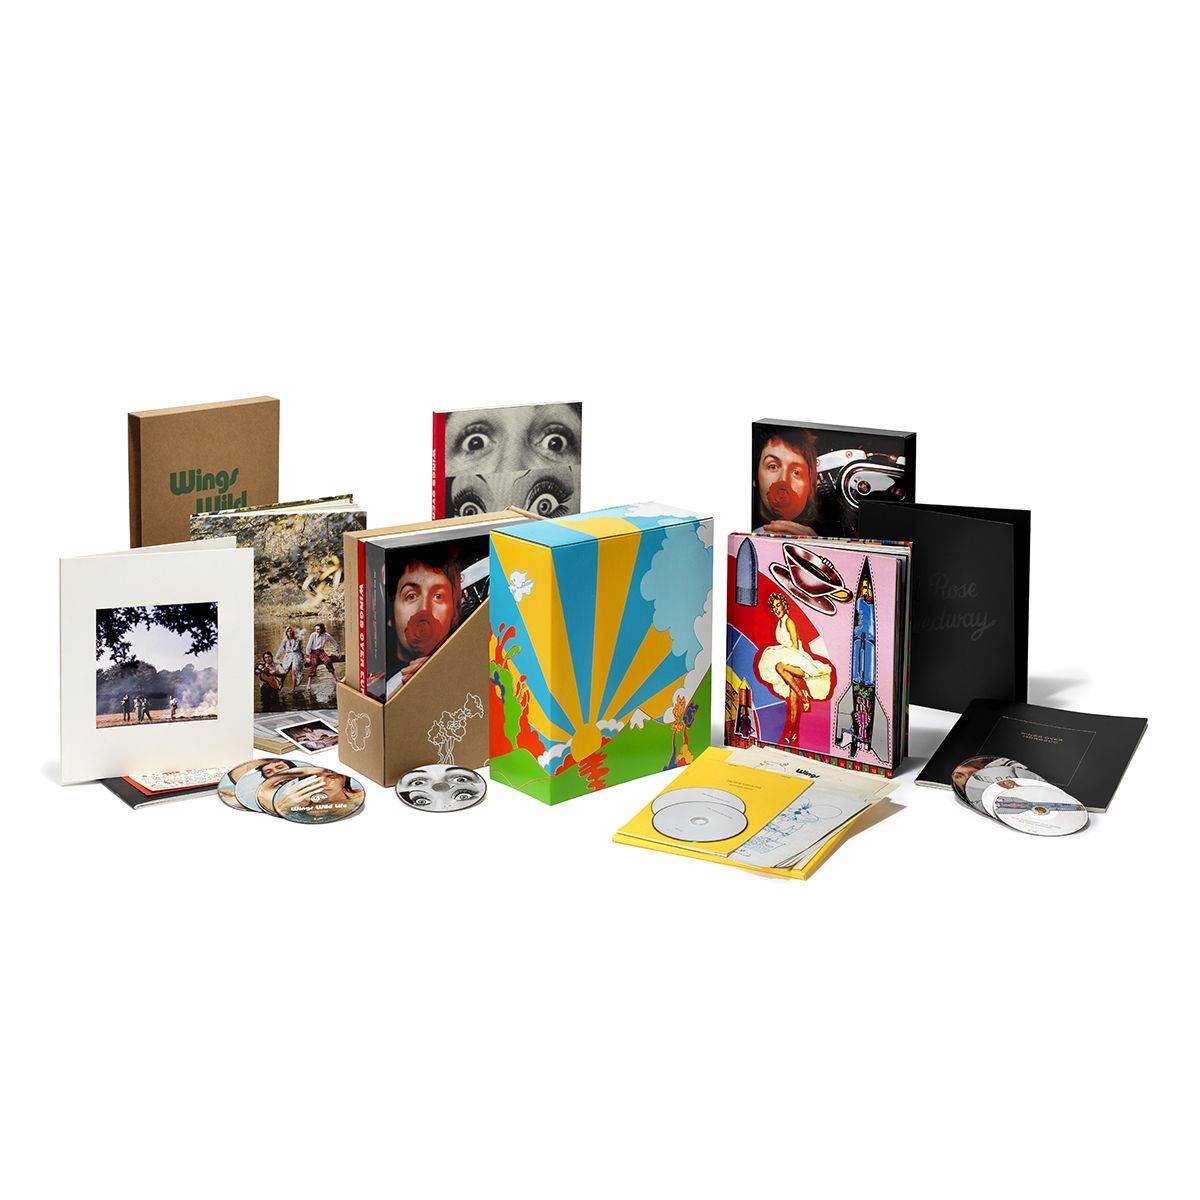 619)Paul McCartney and Wings - WINGS 1971-73 (7 SHM-CD + 3DVD + Blu-ray / Super Deluxe Edition)